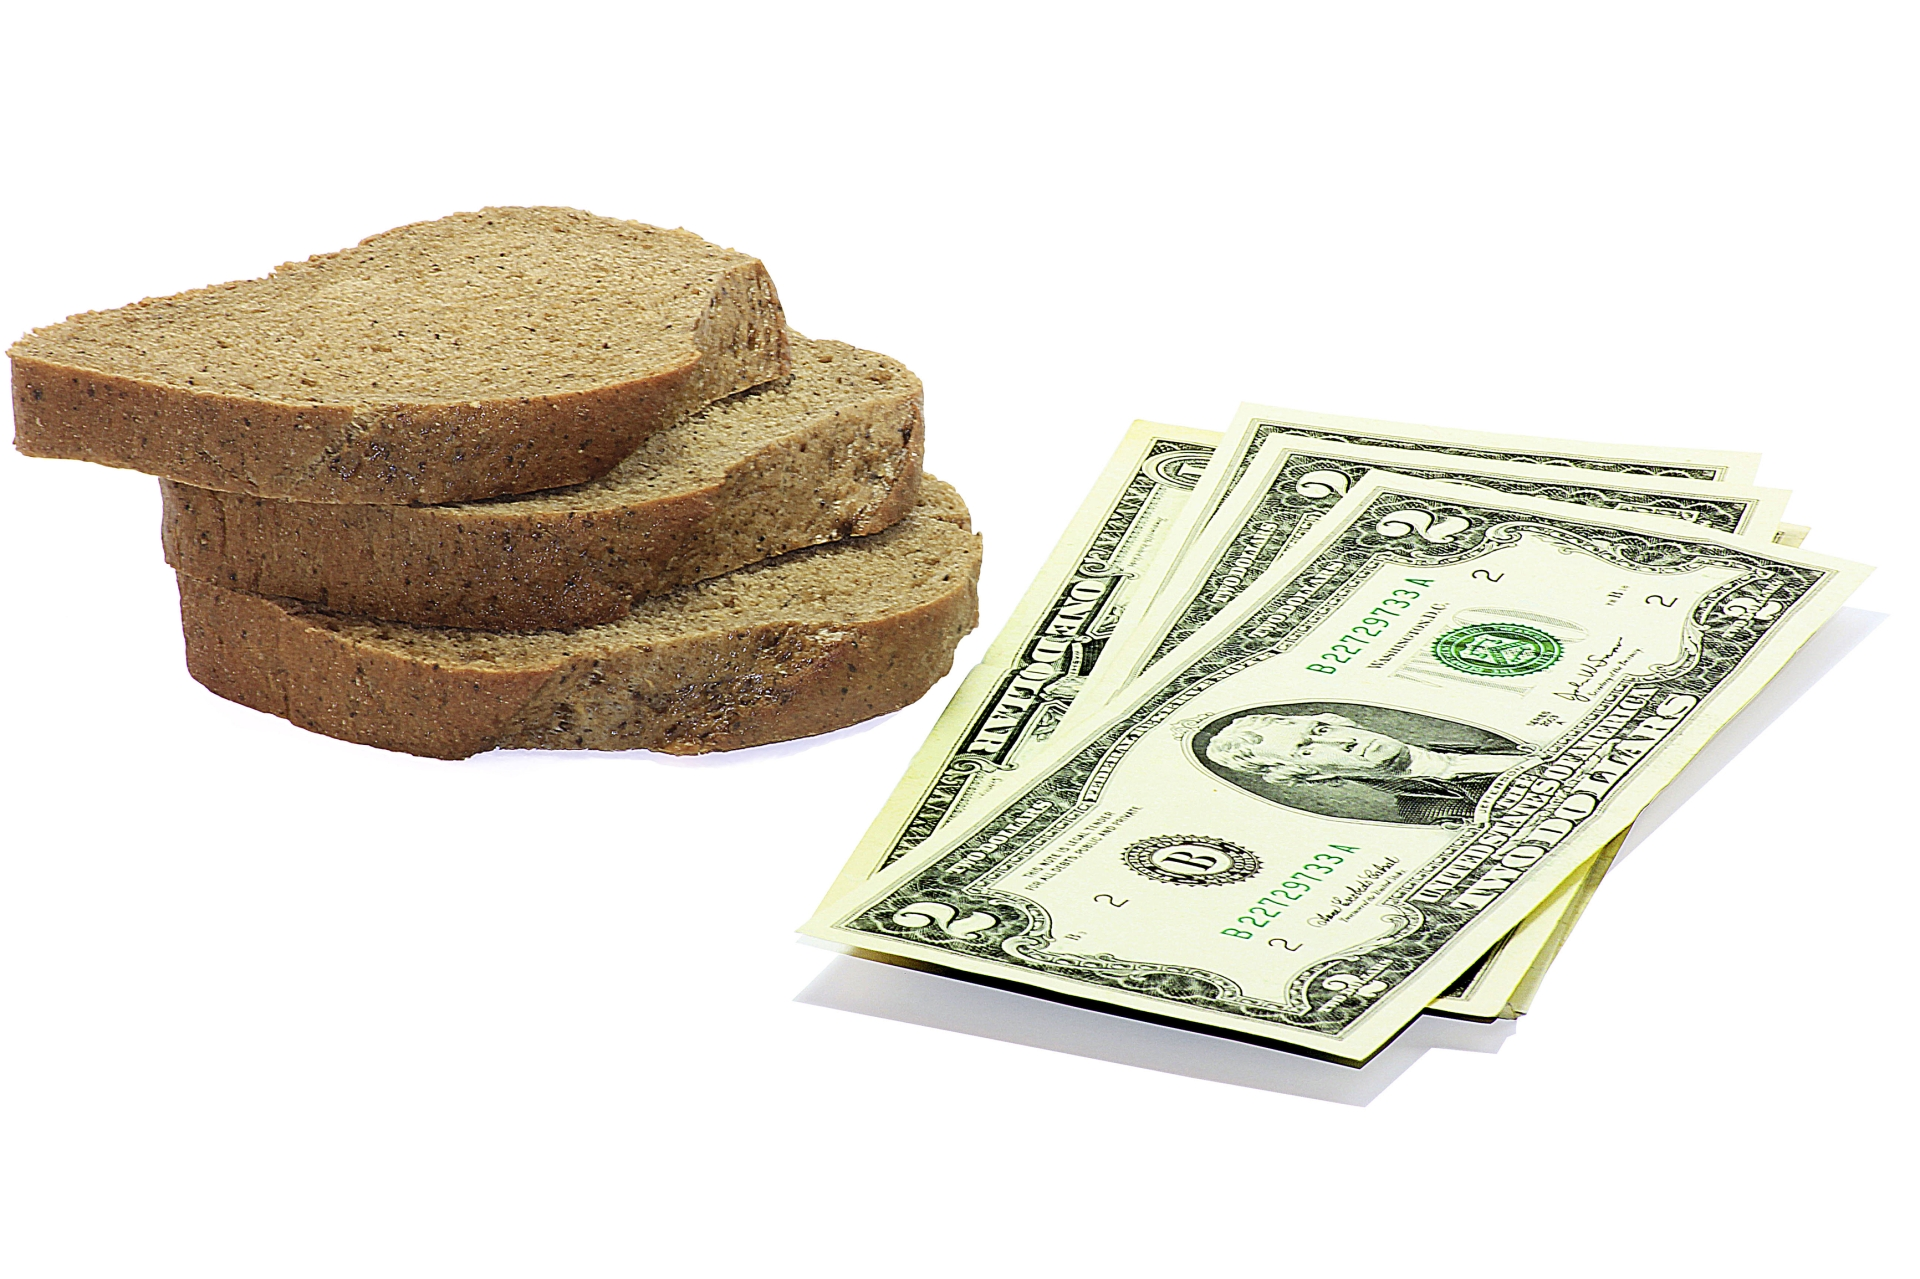 Slices of bread and $2 bills.